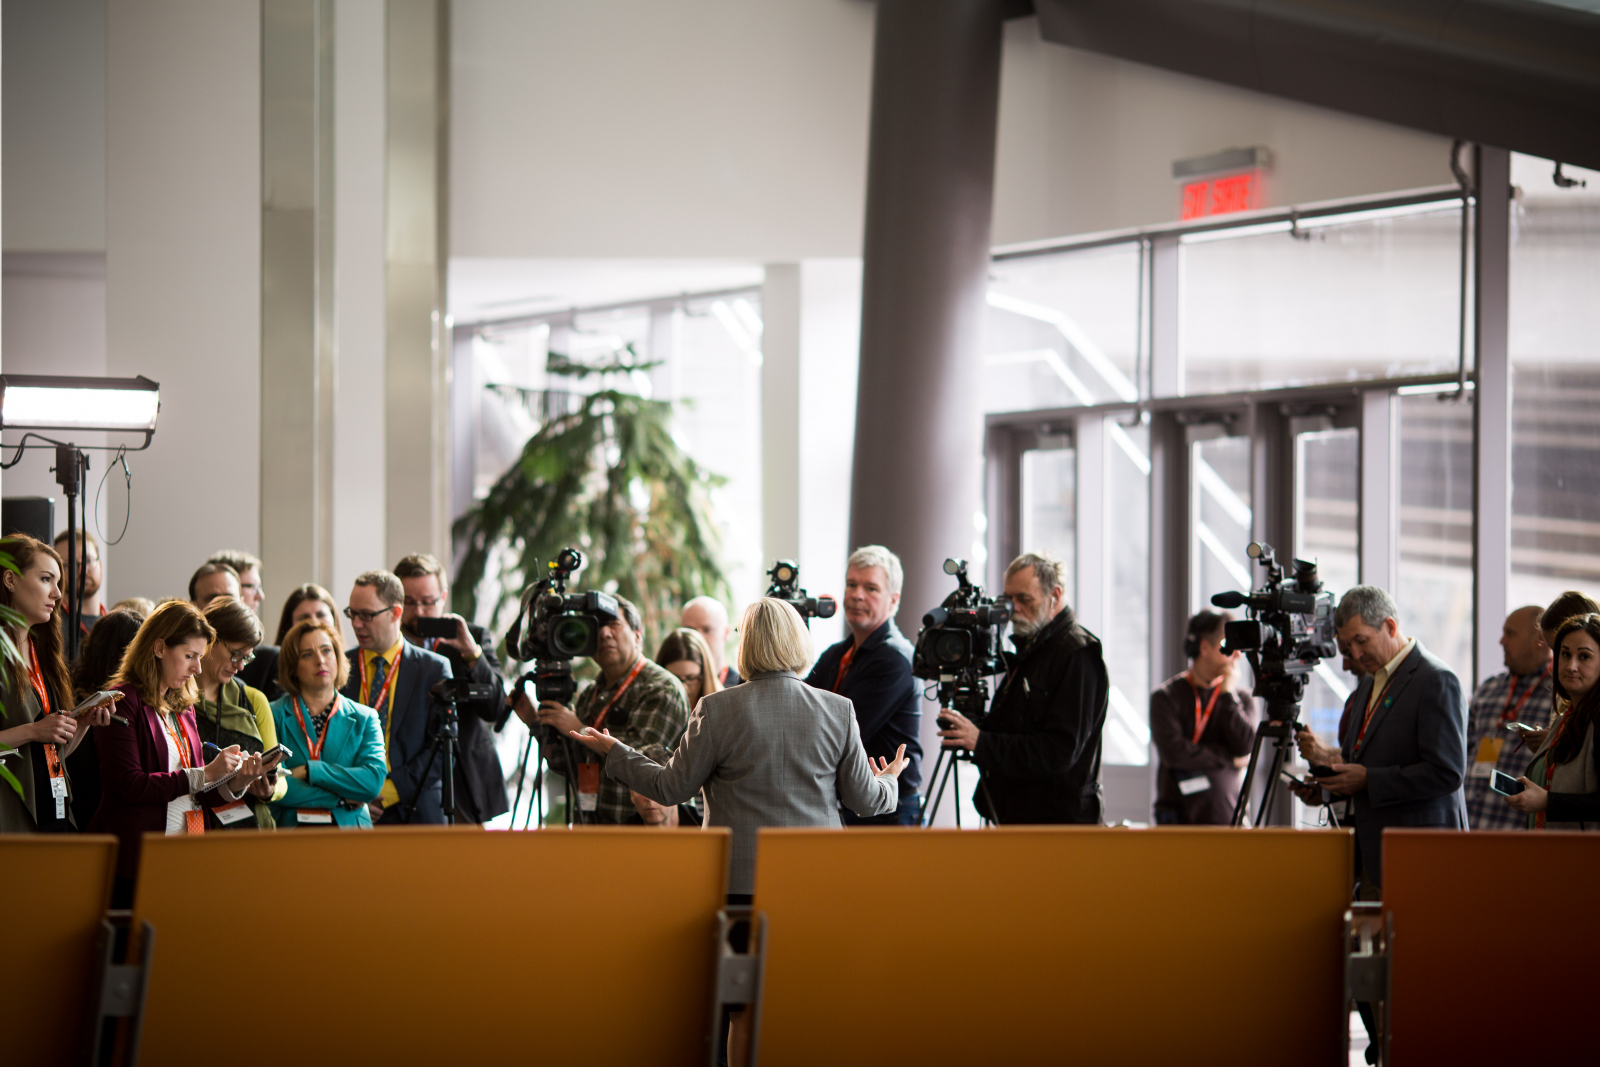 Andrea Horwath fields questions from reporters outside the national NDP convention in Ottawa on Feb. 17, 2018. Photo by Alex Tétreault